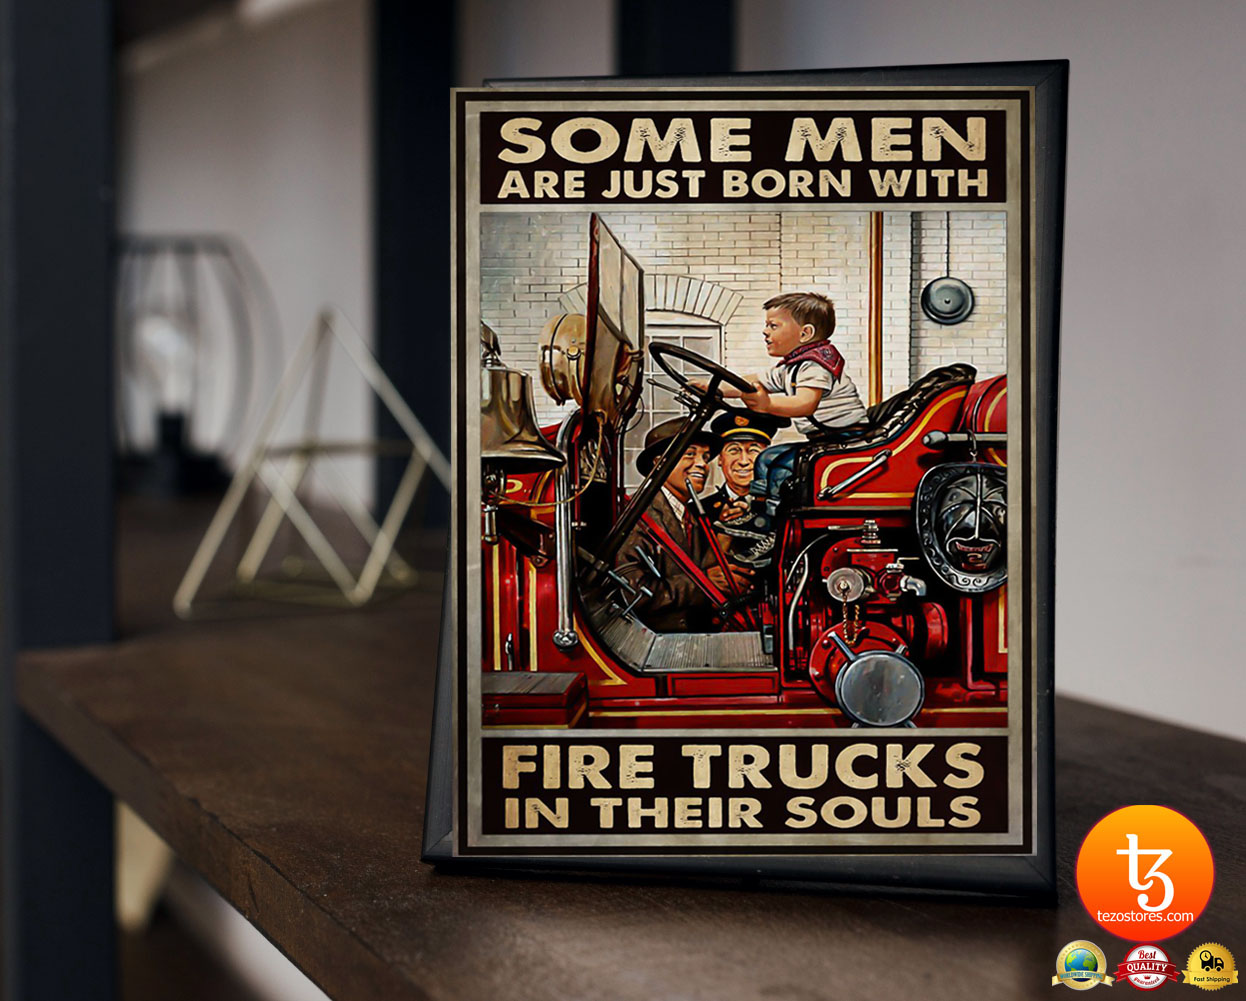 Some men are just born with fire trucks in their souls poster